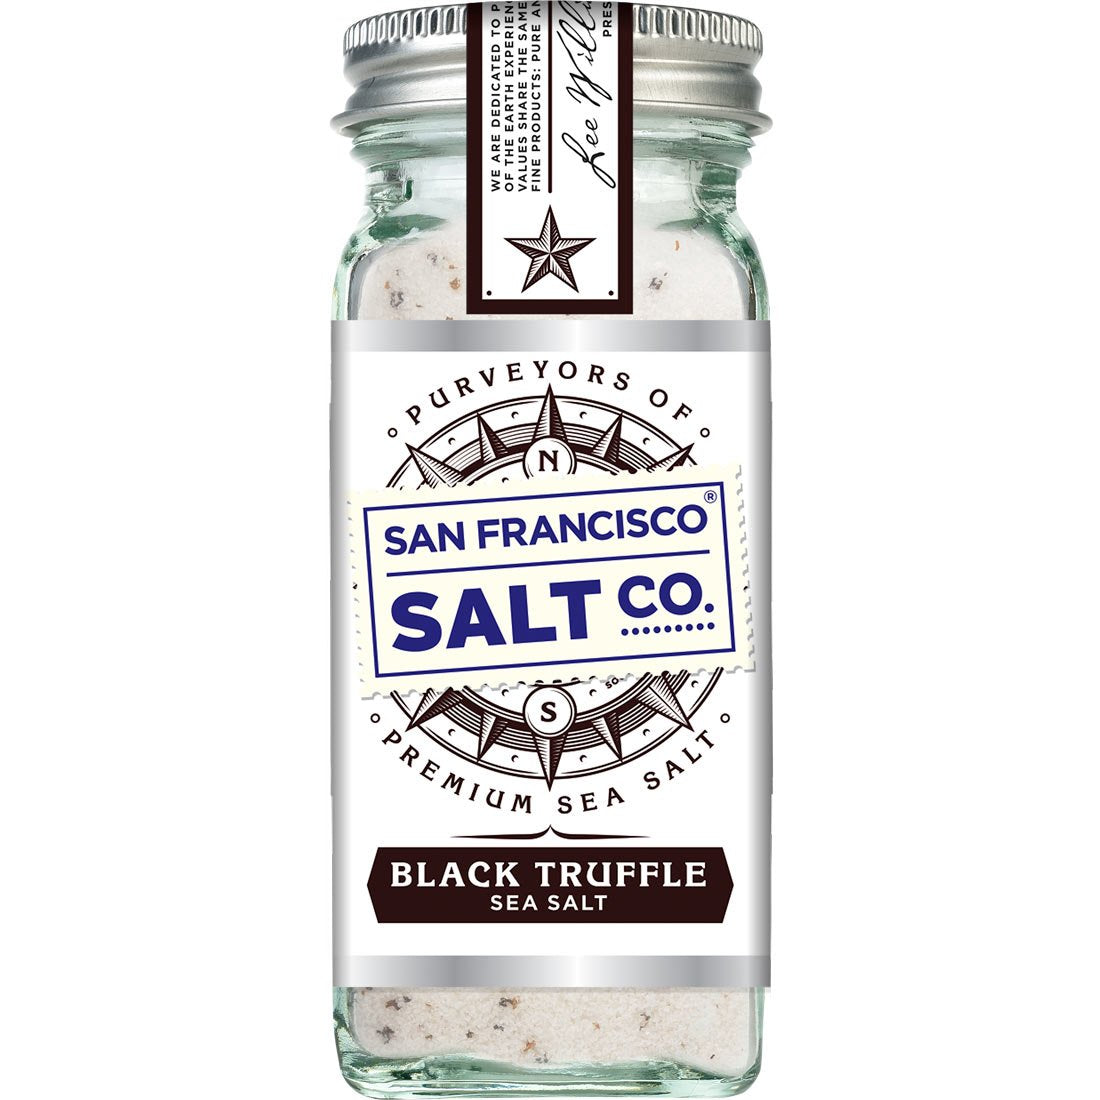 Black Truffle Salt 4 oz. Glass Shaker - San Francisco Salt Company